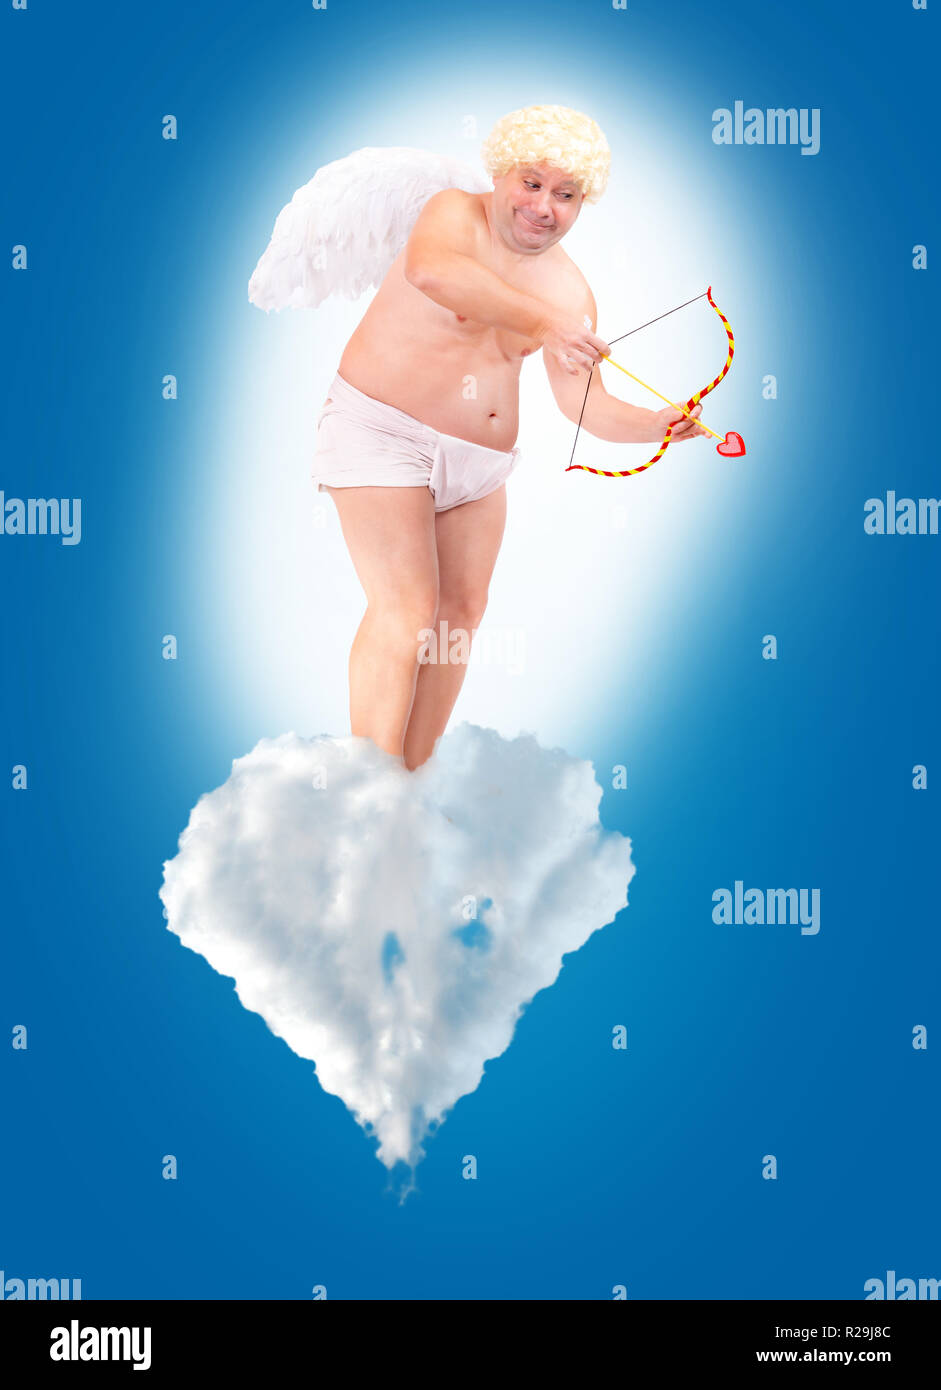 Funny Angel : funny, angel, Funny, Angel, Shoot, Arrow, Love,, Standing, Clouds, Adult, Aiming, Float, White, Cloud, Heaven, Stock, Photo, Alamy